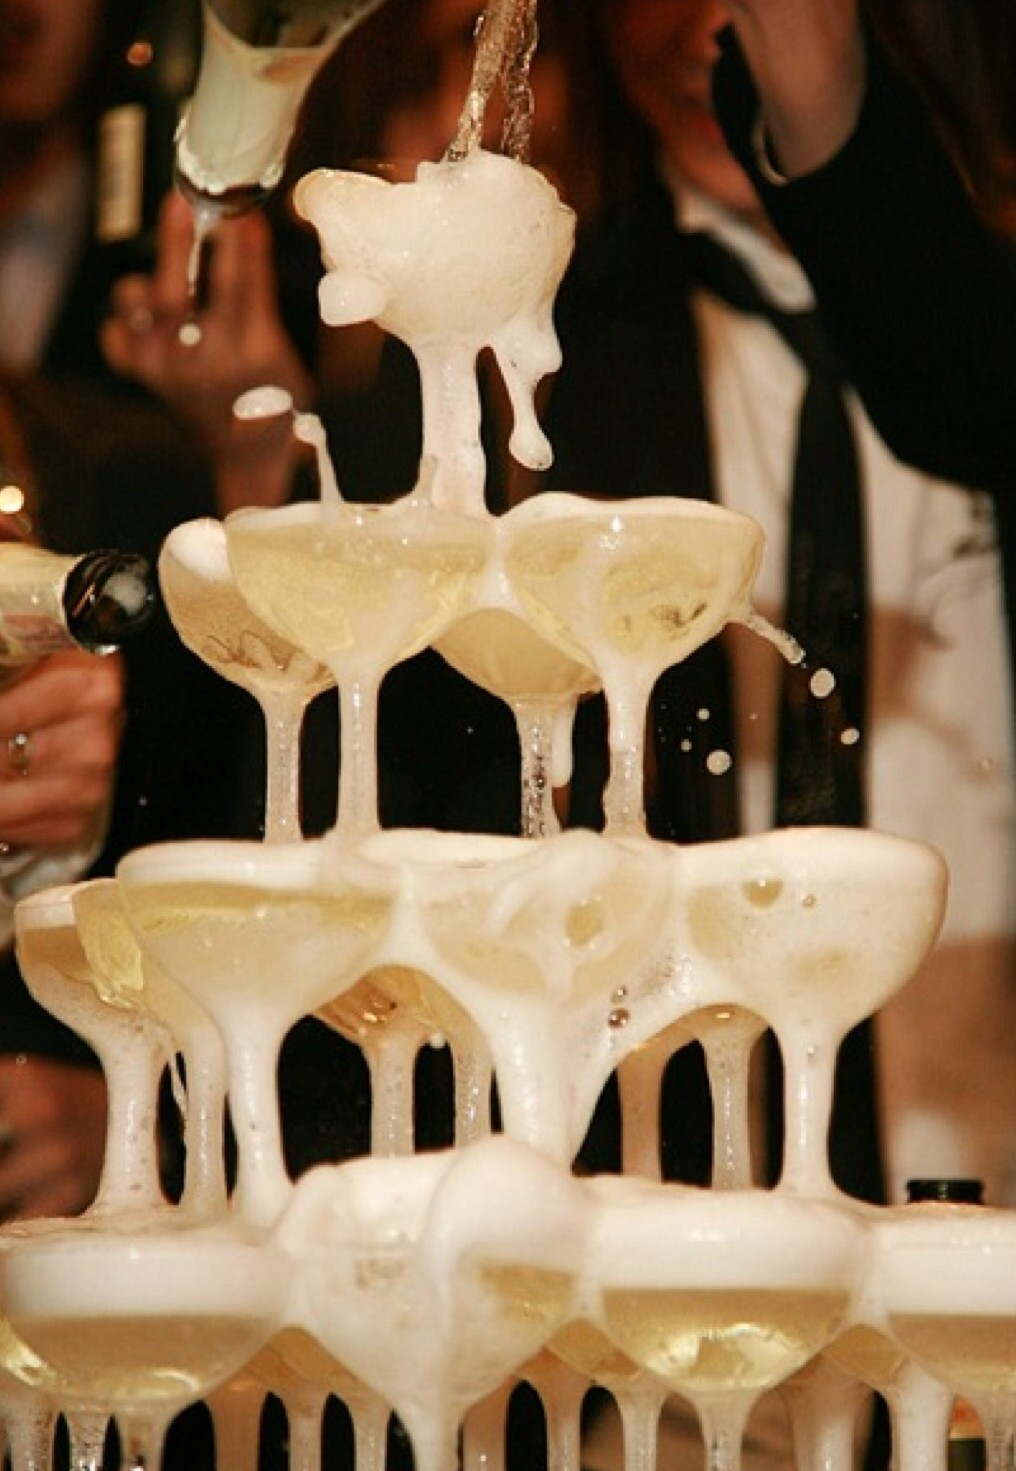 The classic champagne tower makes a stunning addition to any wedding and is one o those details that will get guests talking.